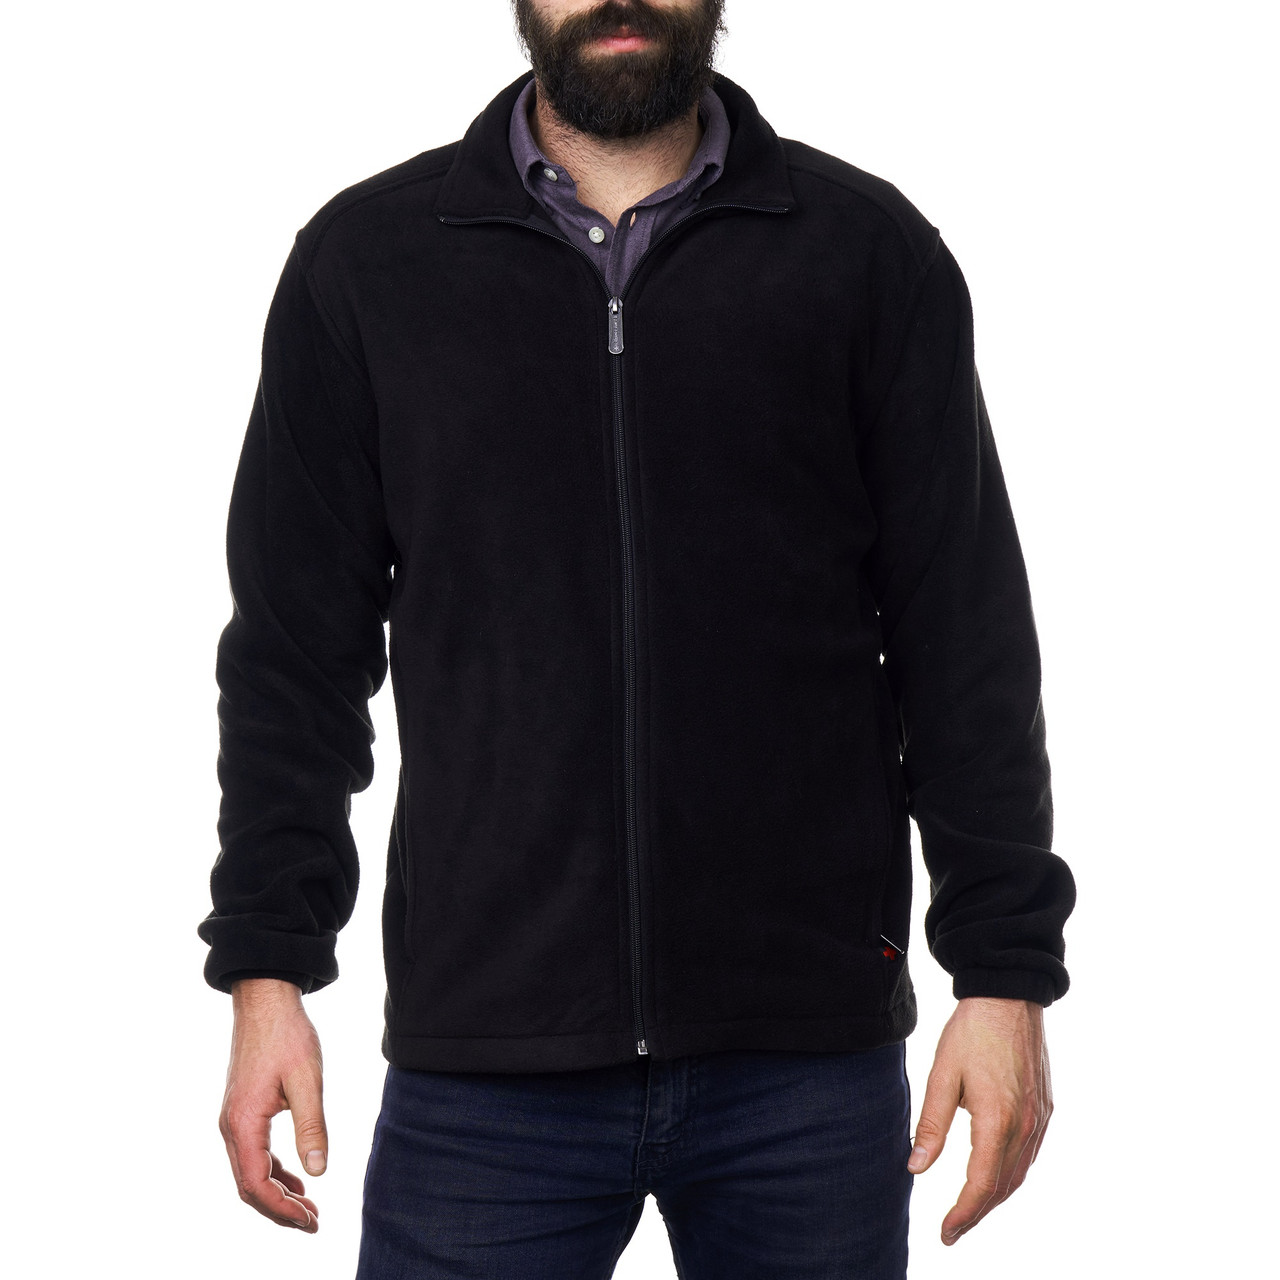 08402f486531 ... Full Zip Up Fleece Jacket ·  https   d3d71ba2asa5oz.cloudfront.net 12013236 images as867-